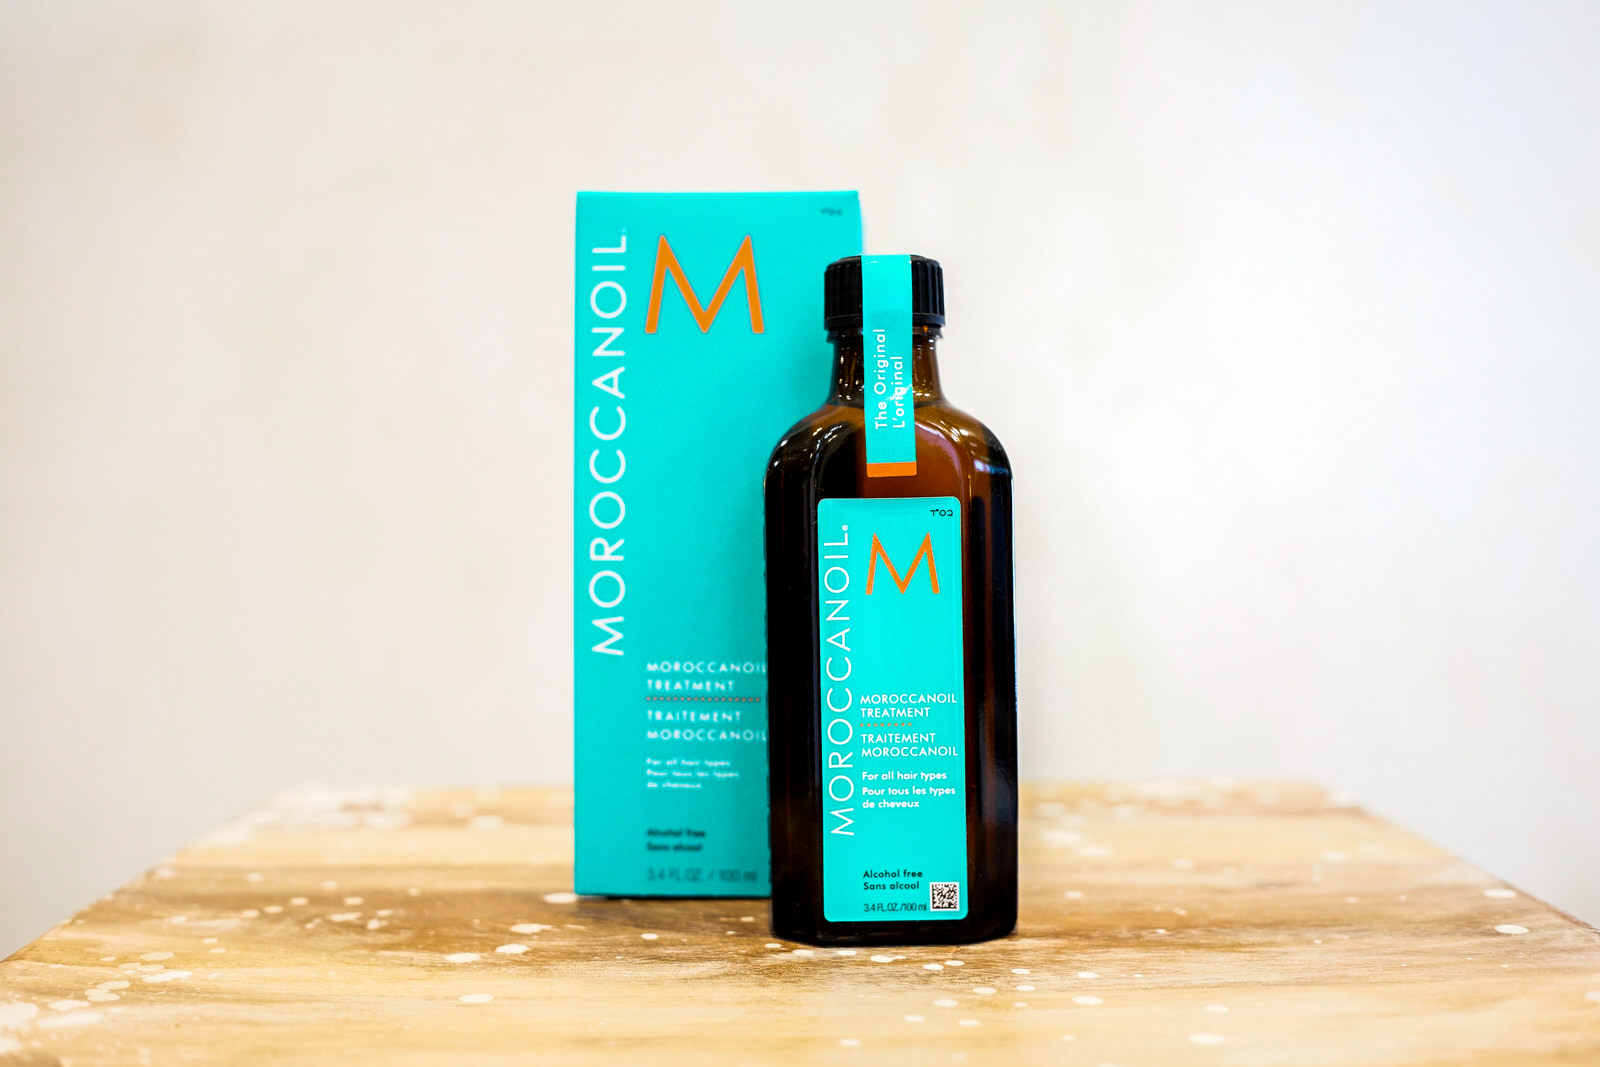 MOROCCANOIL TREATMENT Image